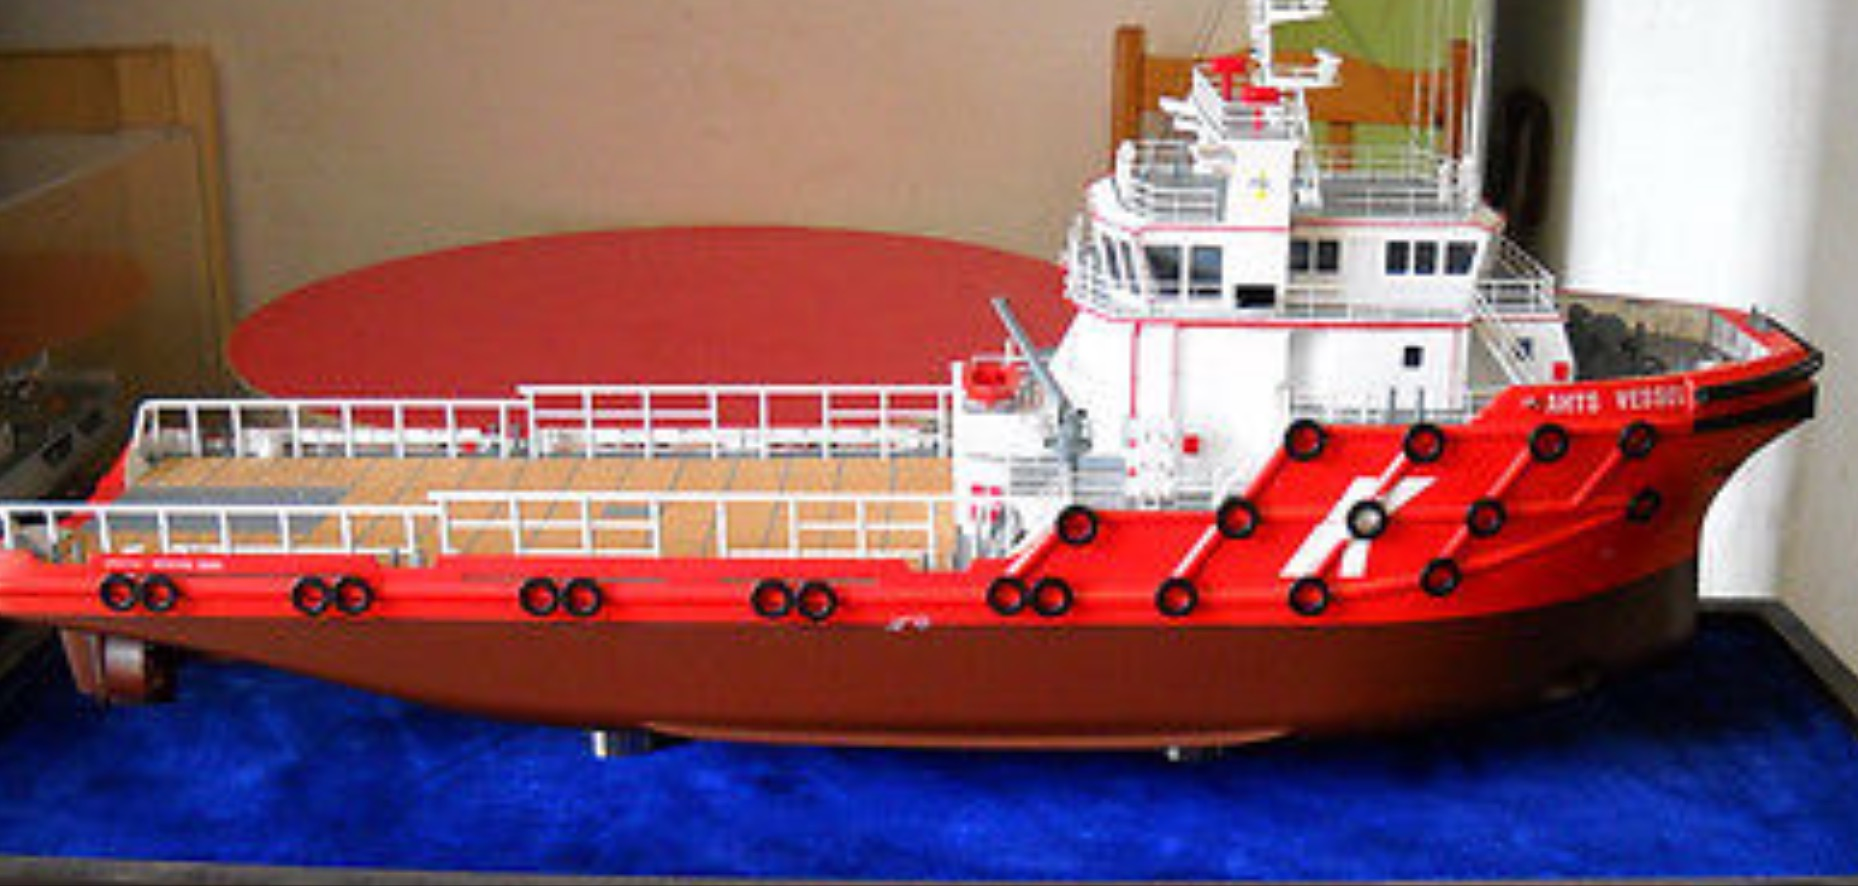 RC ANCHOR HANDLING TUG BOAT SHIP ( AHTS ) – UNASSEMBLED KIT | The Scale Modeler - Trains, Boats ...